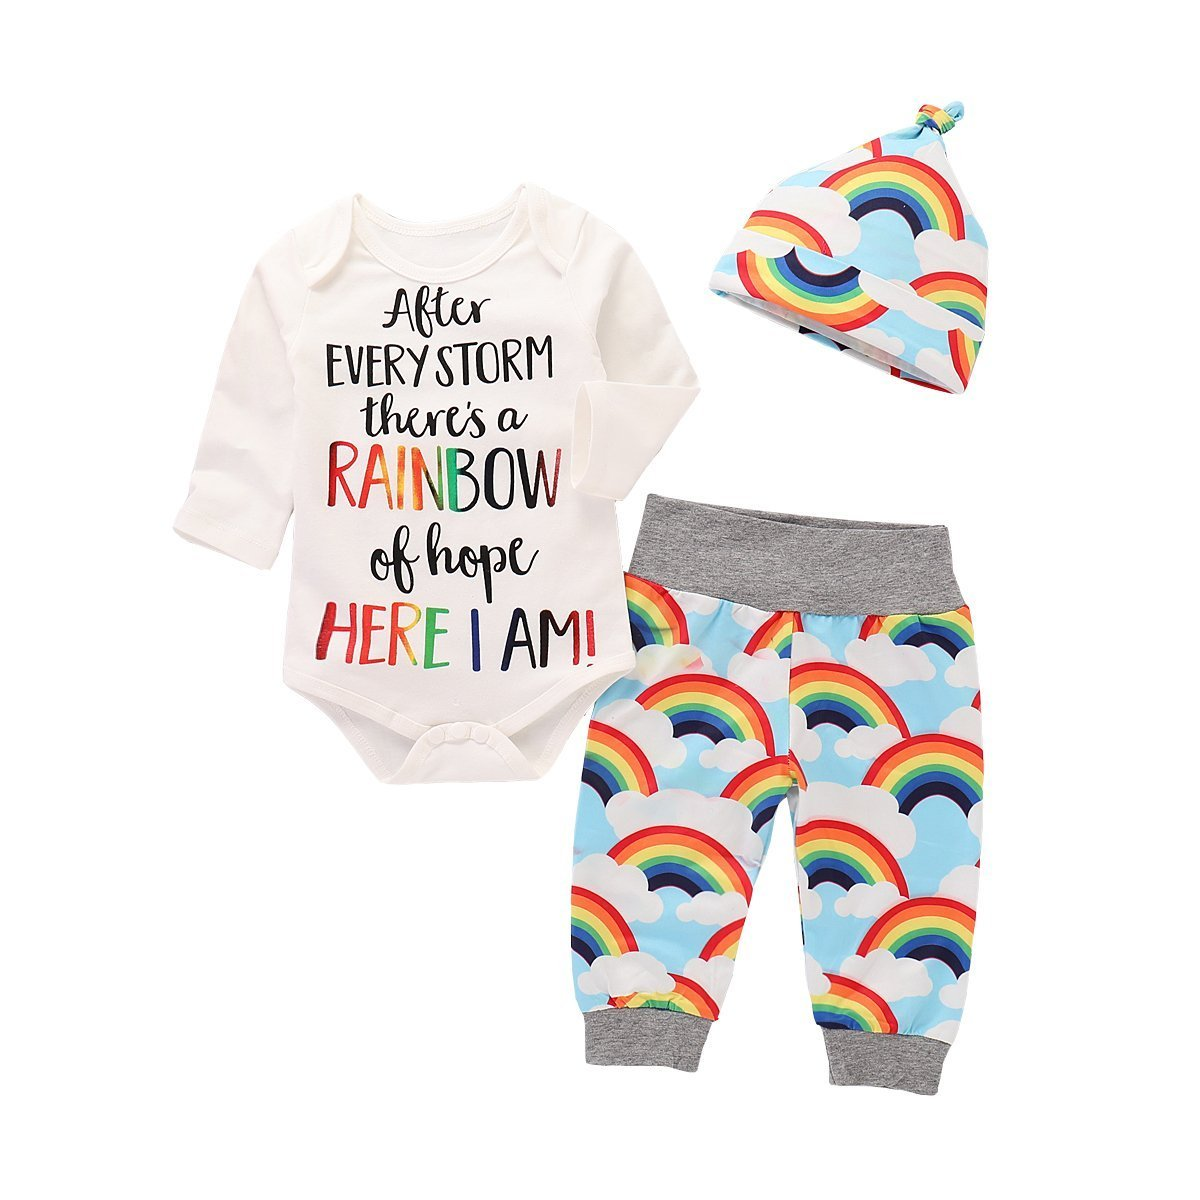 36f593fcab8 Newborn Baby Unisex Infant Gown and Hat Set- Rainbow Baby - Baby Shower Gift  - Coming Home Outfit